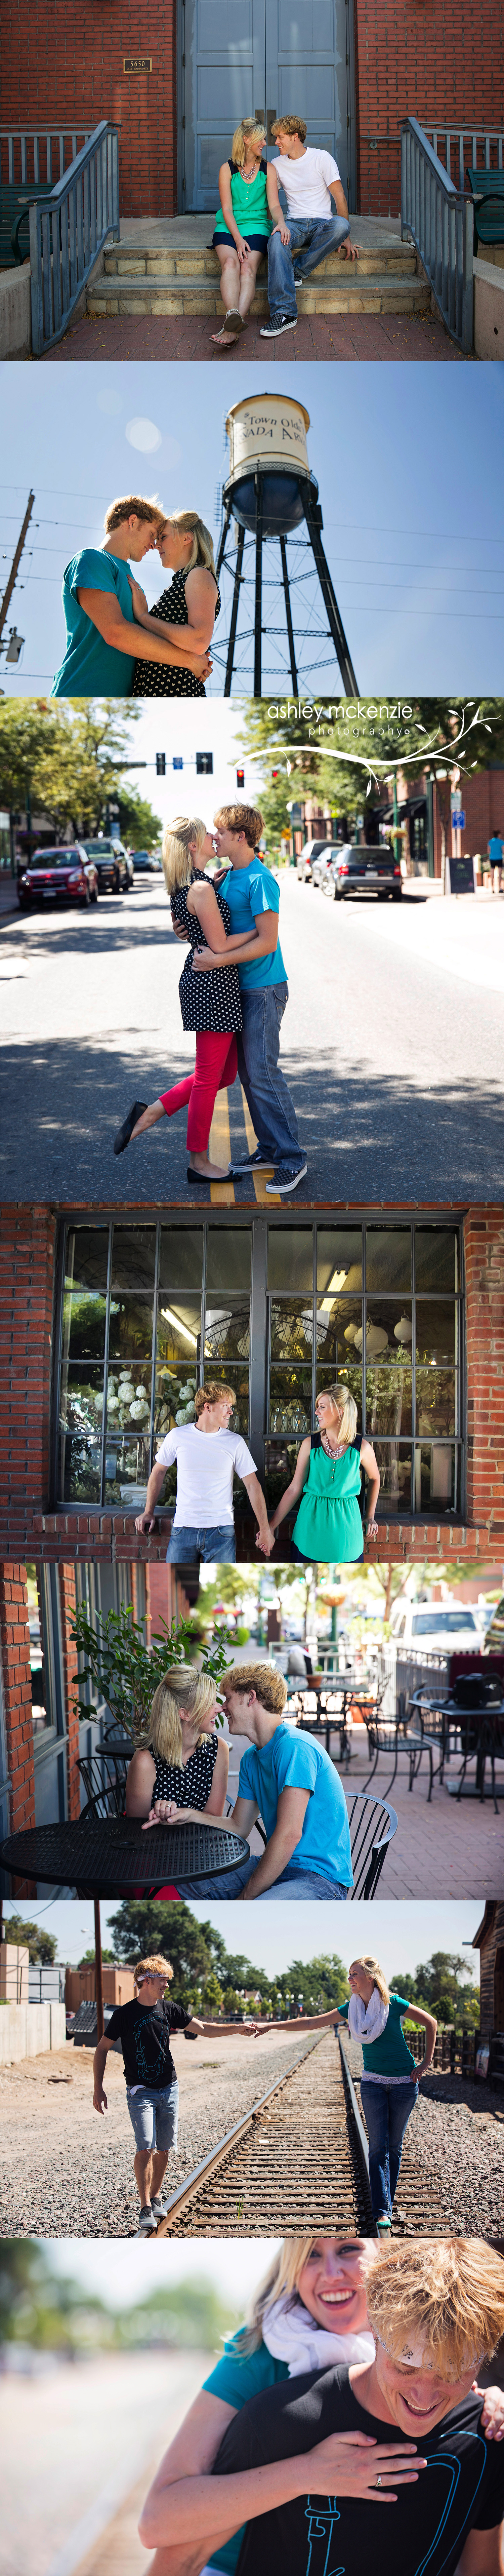 Engagement Photography by Ashley McKenzie Photography in Arvada, Colorado